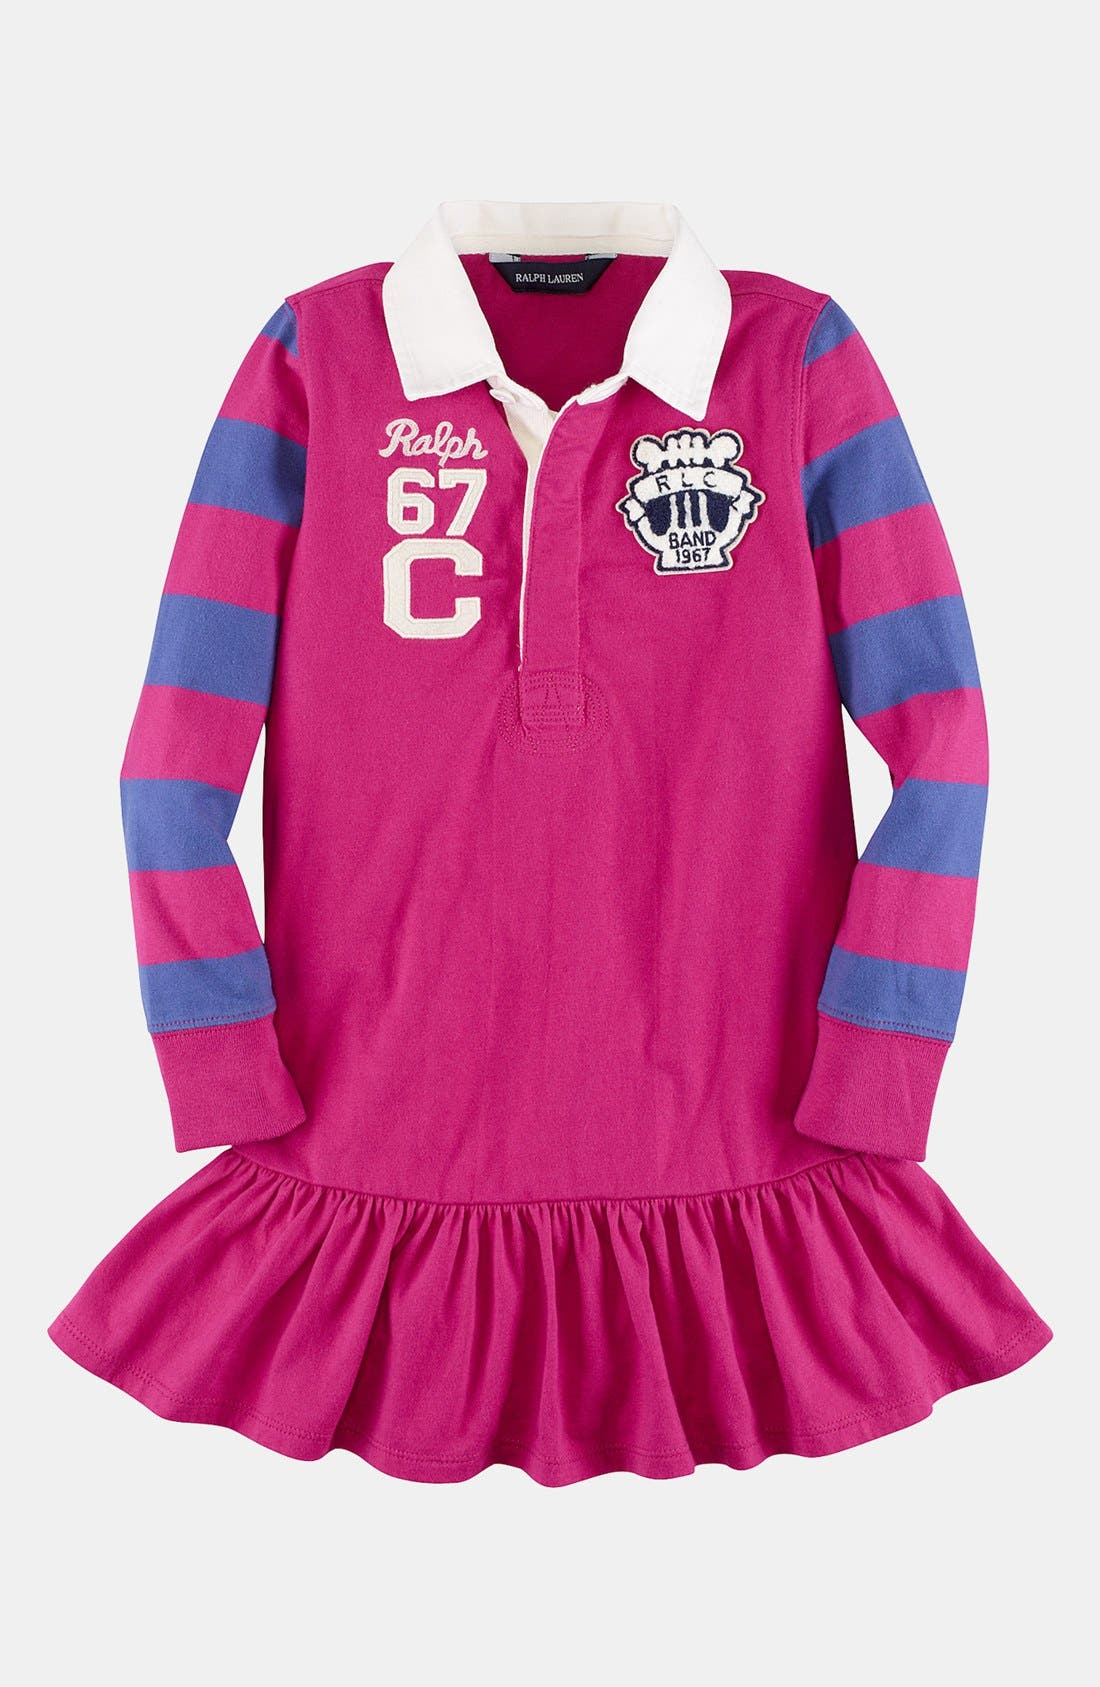 Alternate Image 1 Selected - Ralph Lauren Rugby Dress (Toddler Girls)